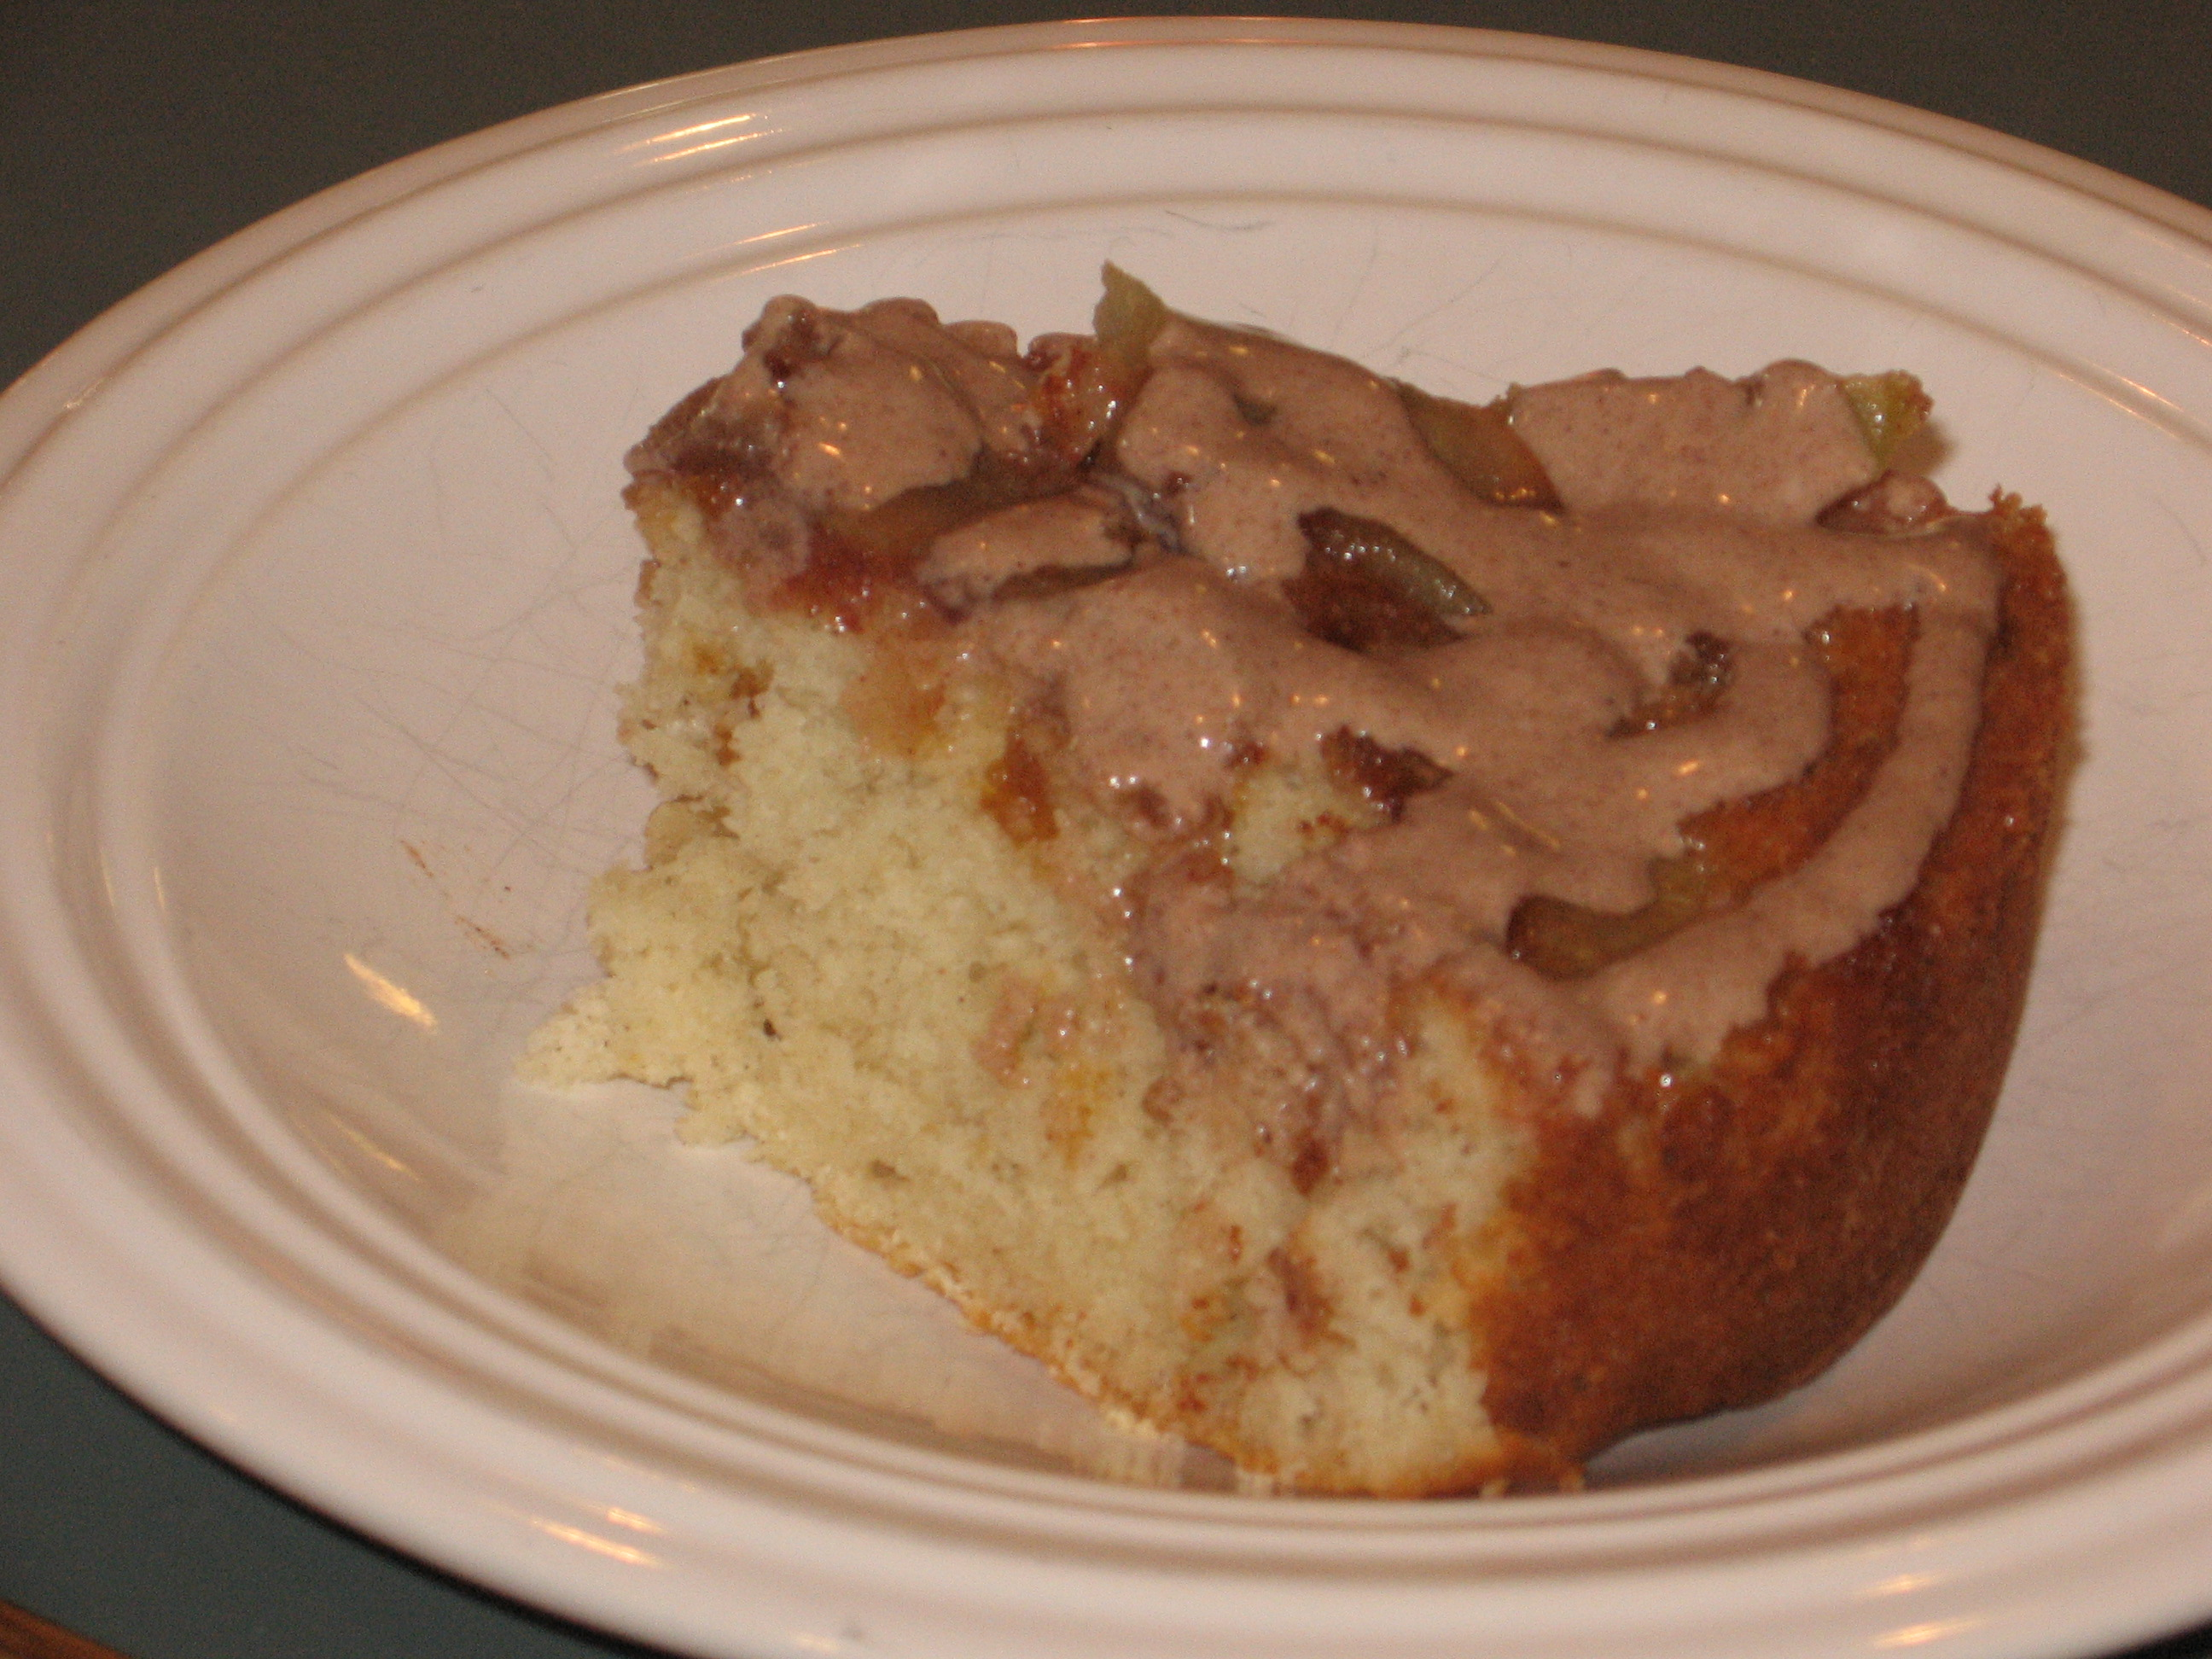 Picture of Warm Coffee Cake